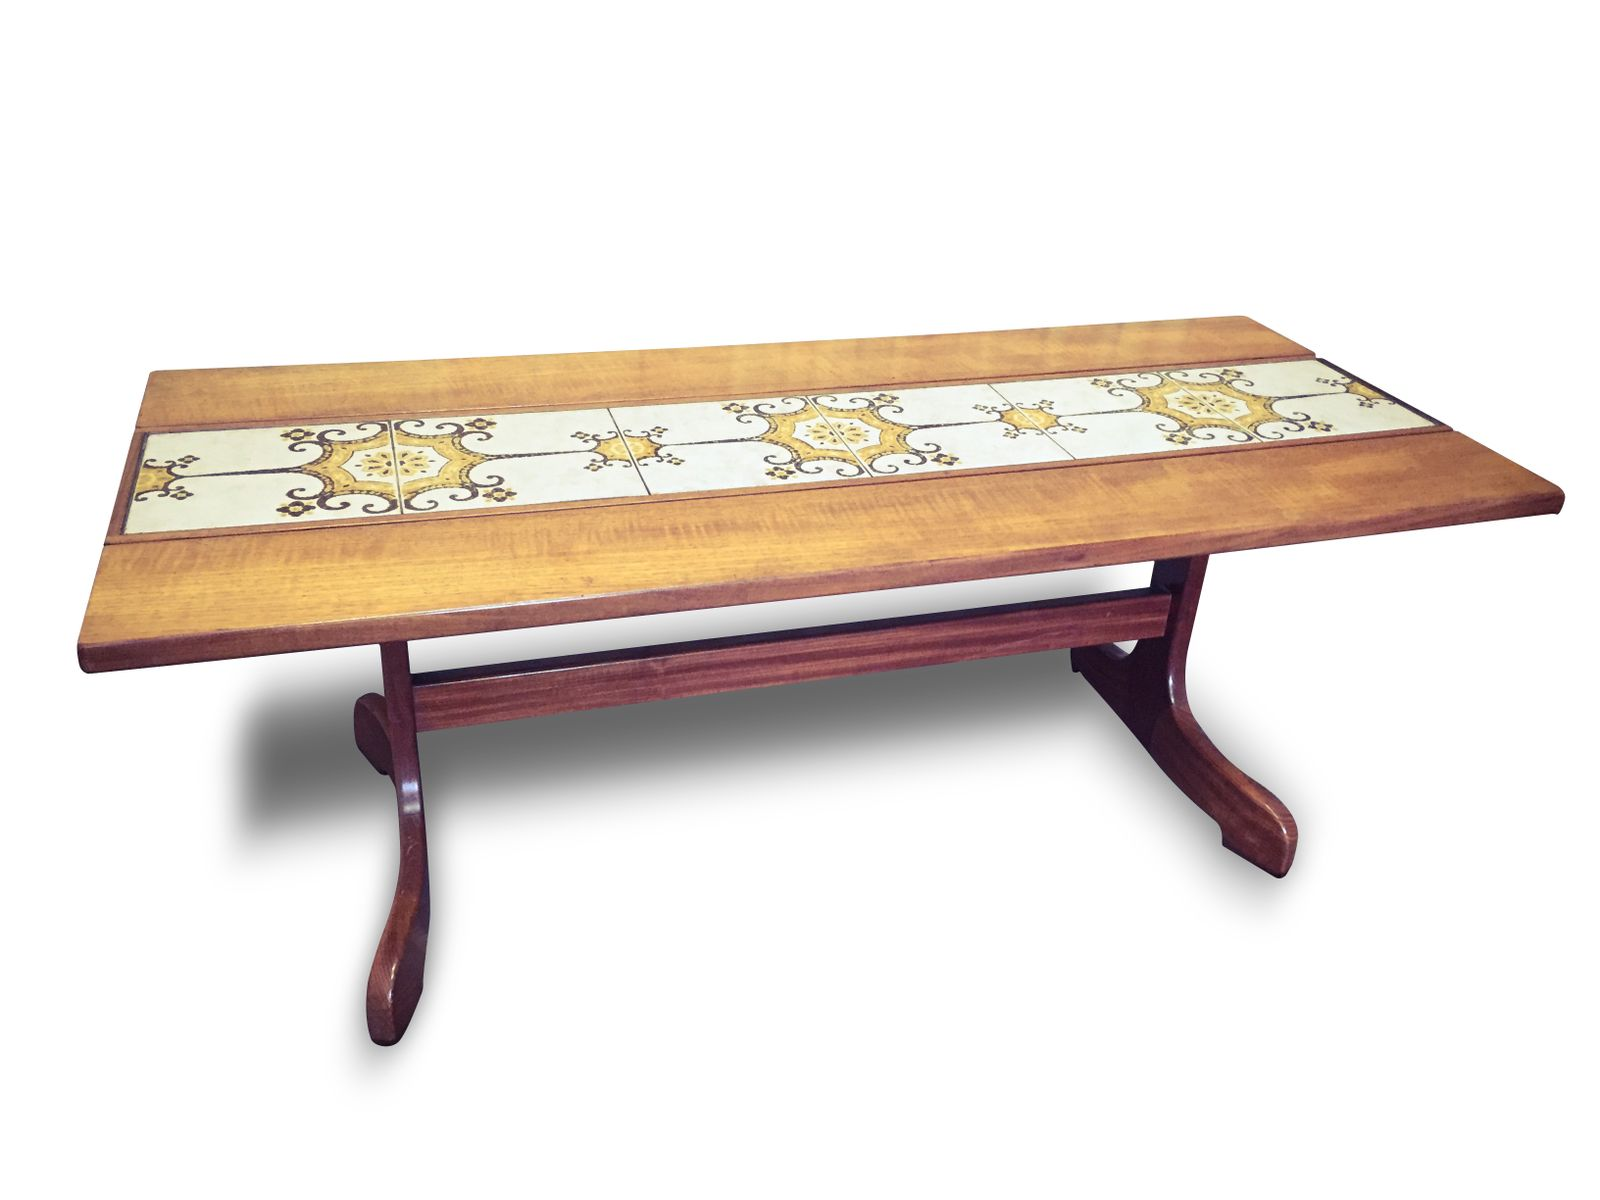 Mid Century Teak Tiled Coffee Table From G Plan 1960s For Sale At Pamono